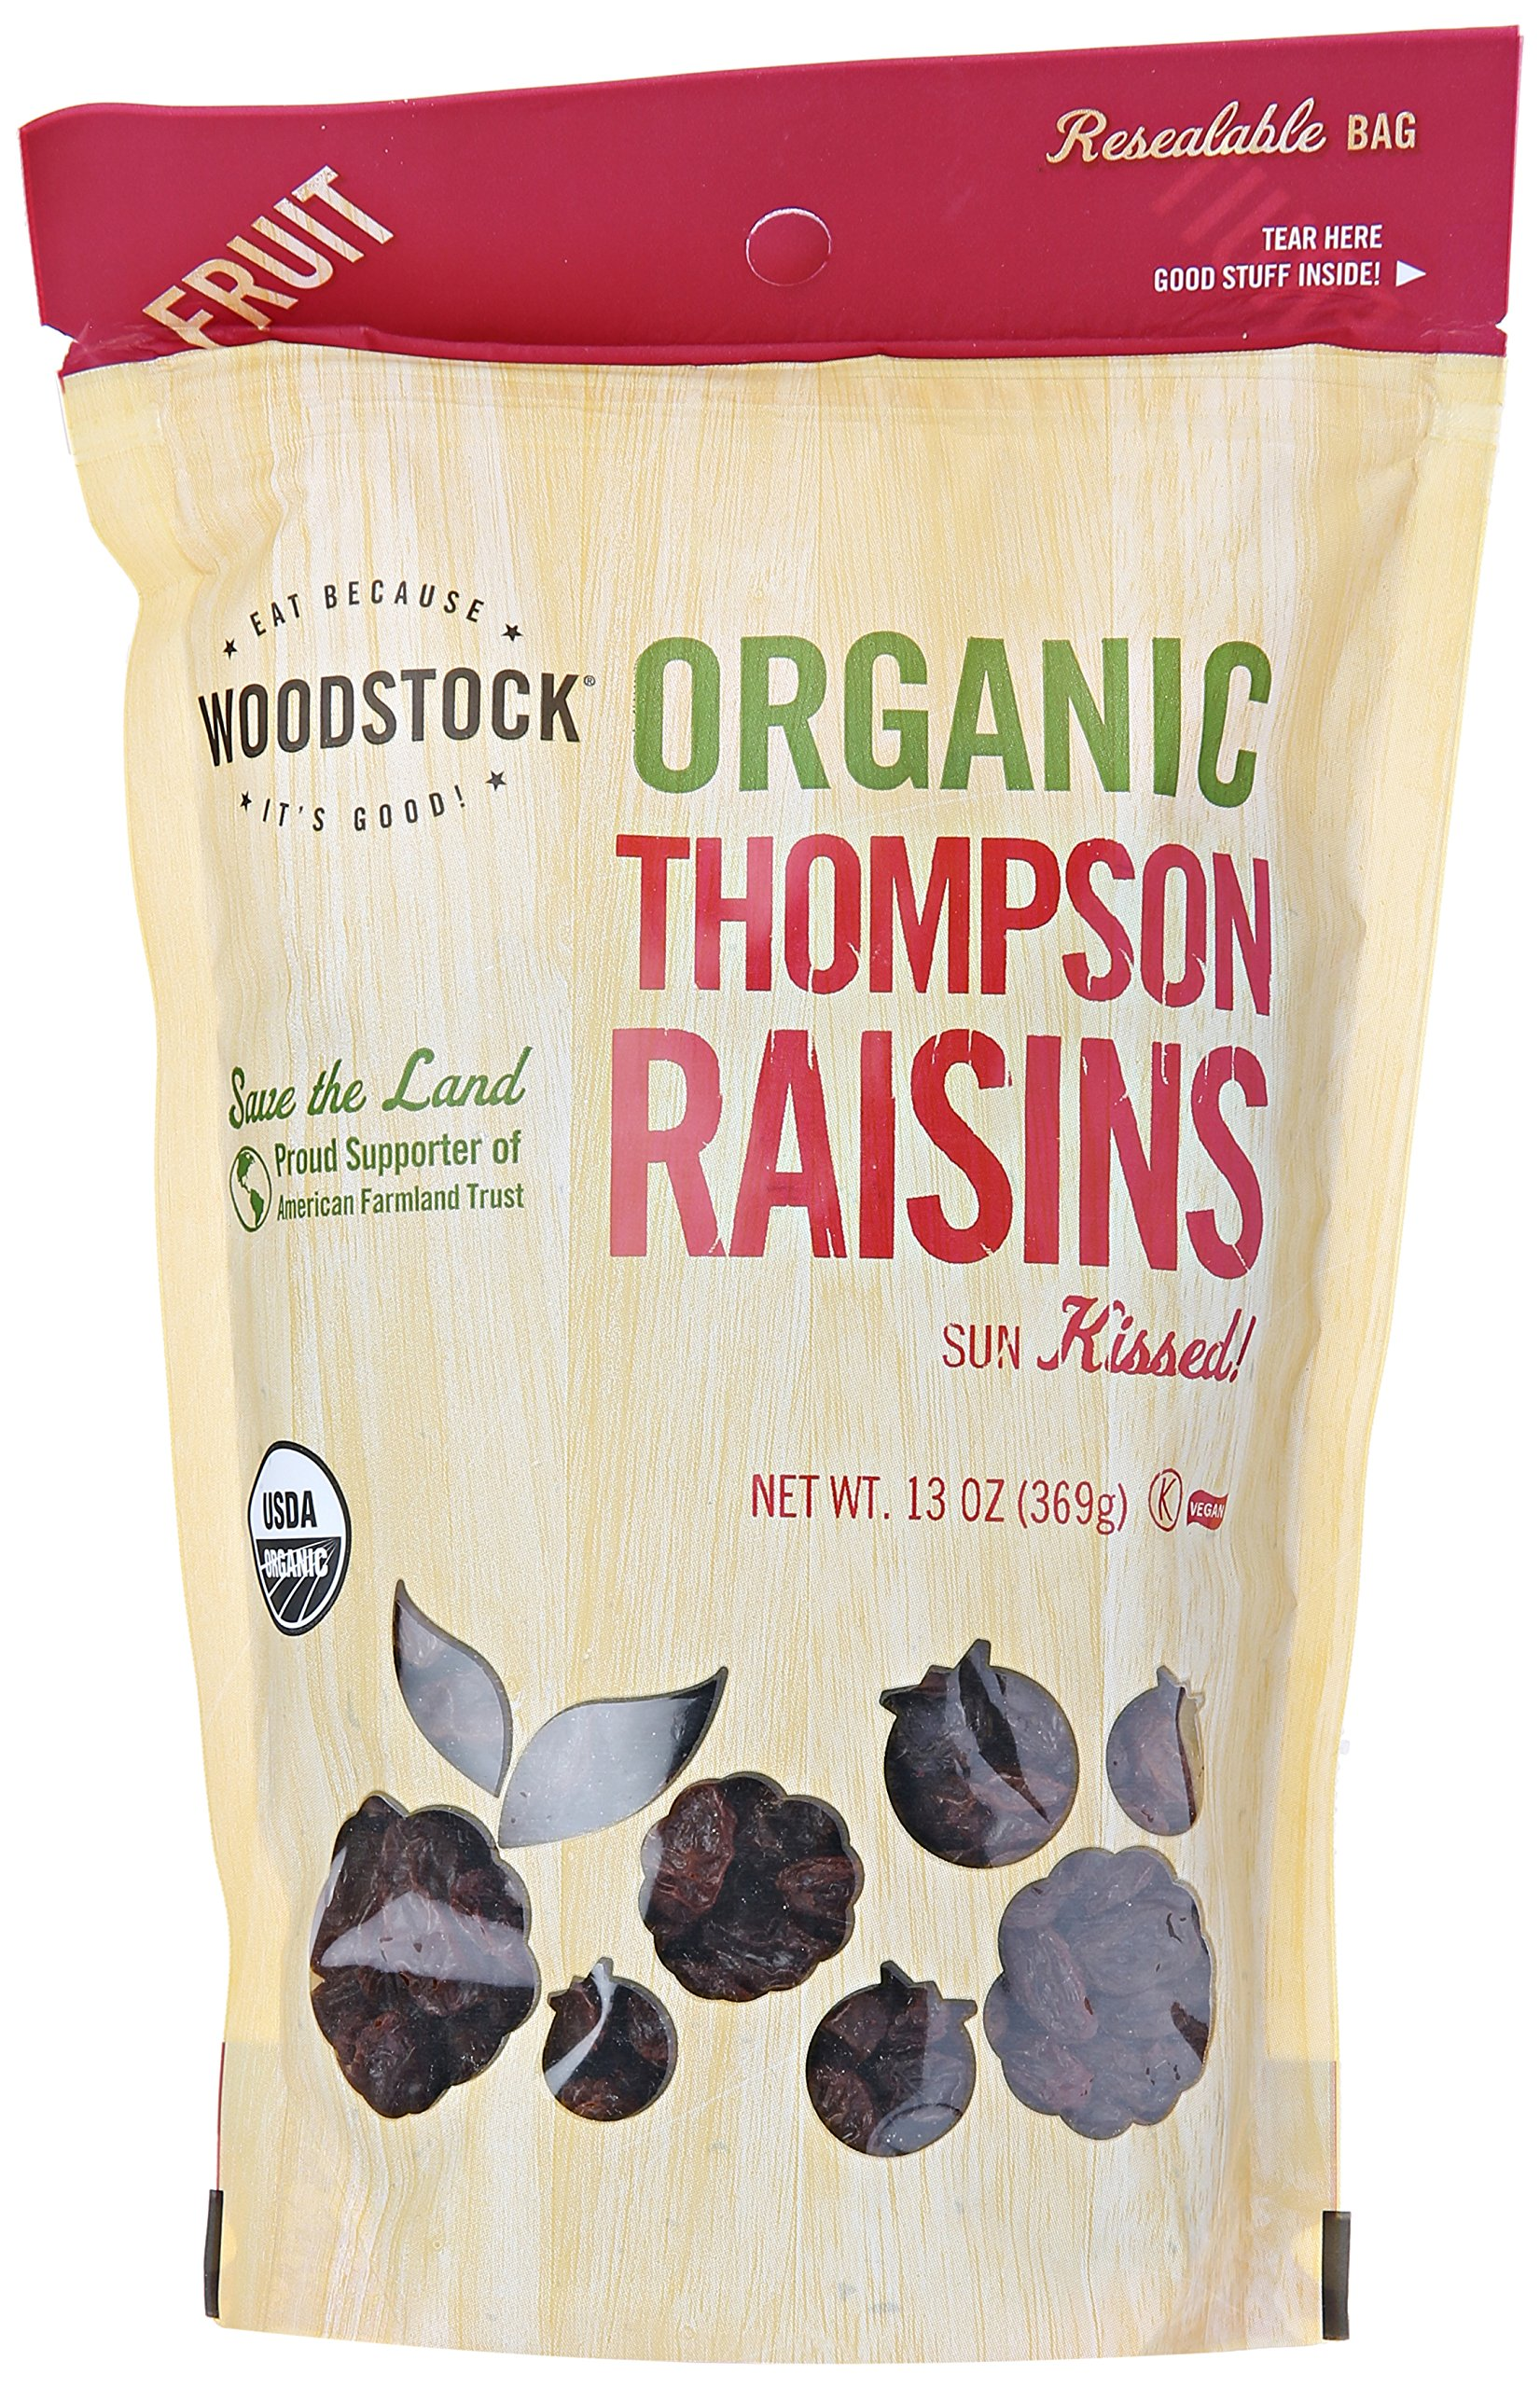 Woodstock Organic Thompson Raisins, 13 Oz